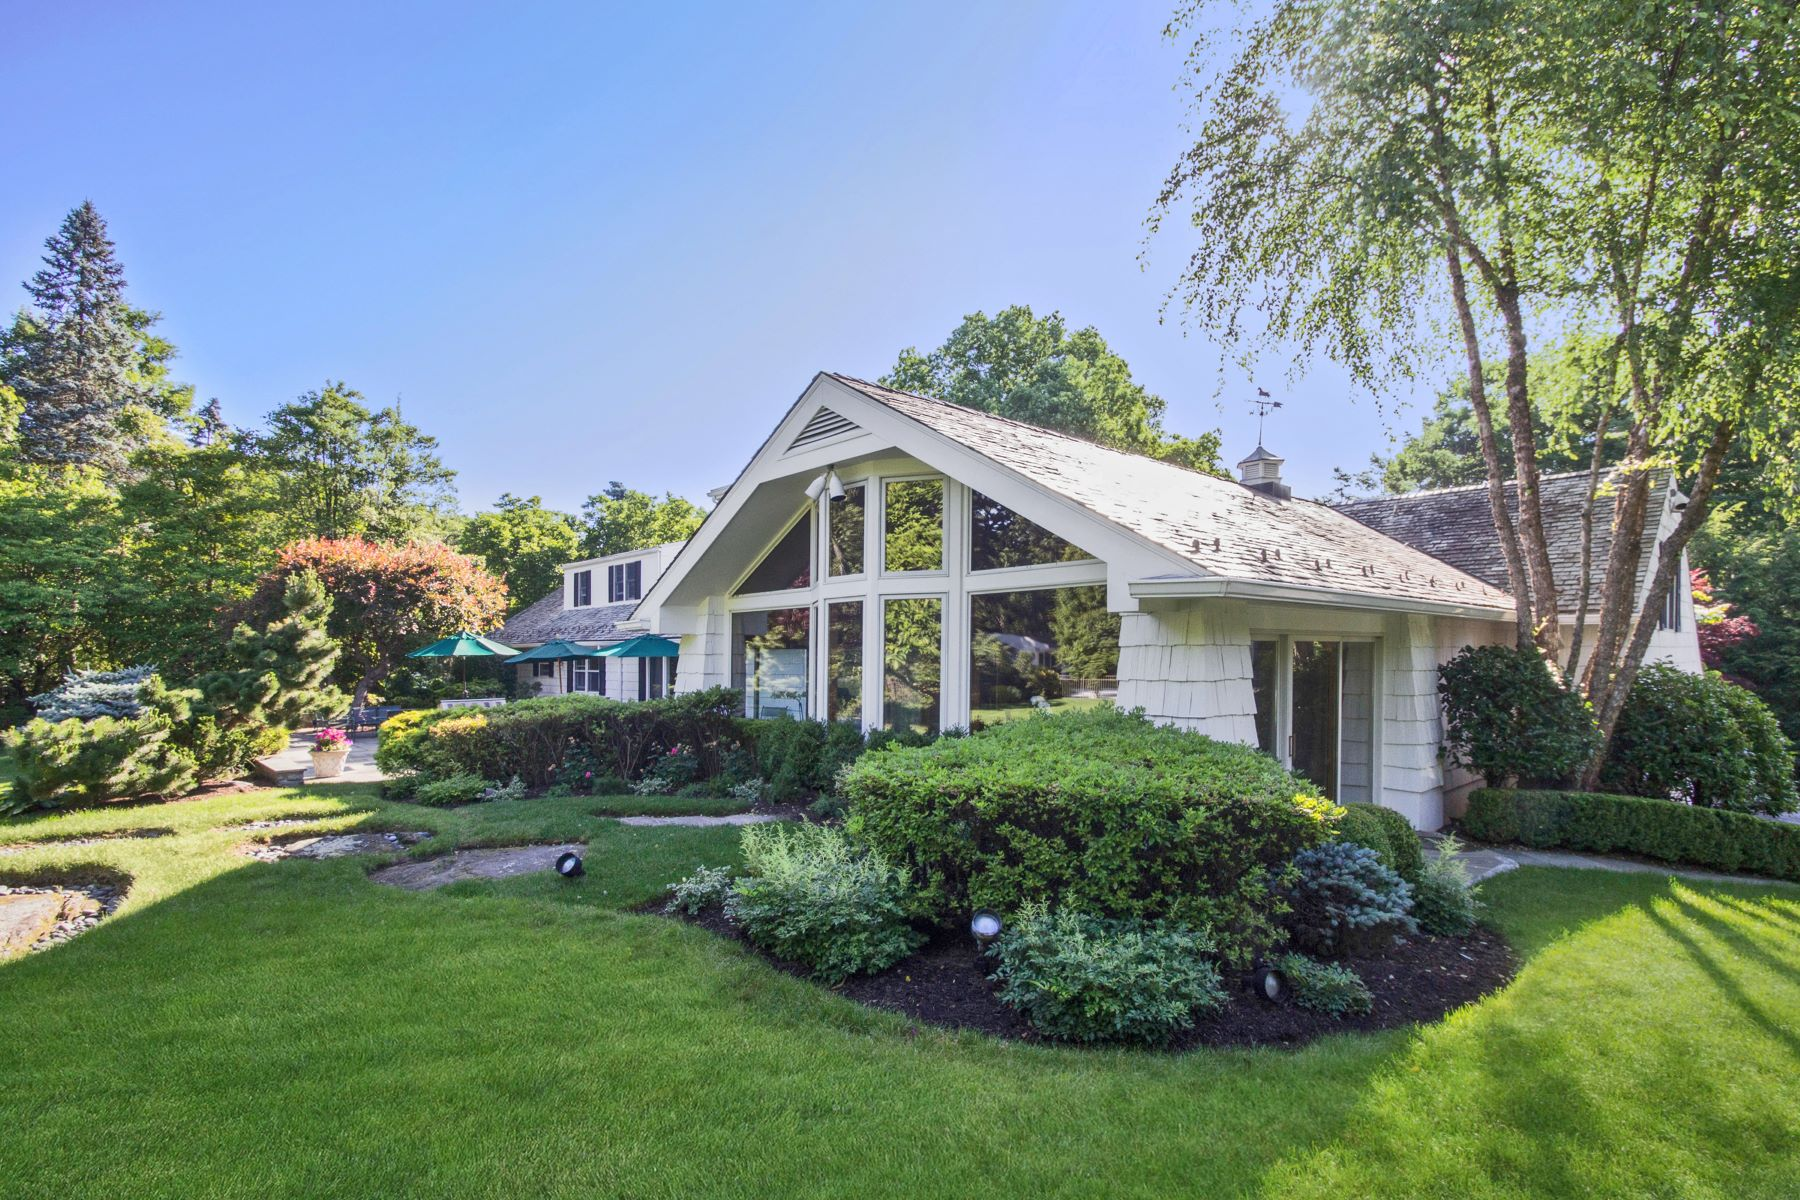 Single Family Home for Sale at 41 Winged Foot Drive 41 Winged Foot Drive Larchmont, New York 10538 United States